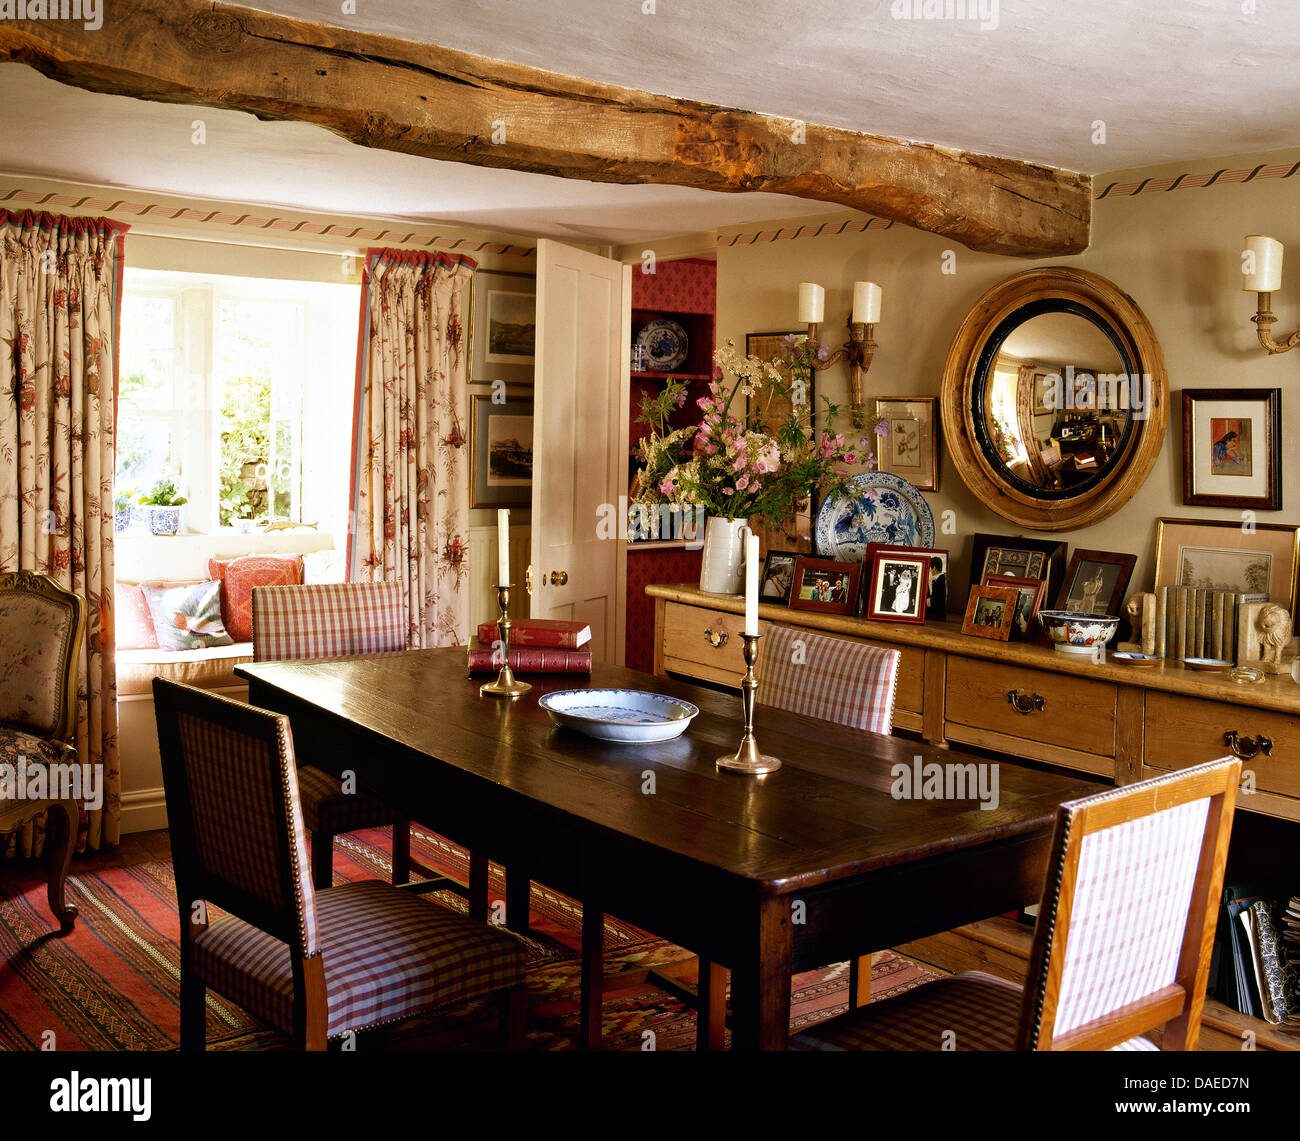 Upholstered chairs at antique oak table in cottage dining room with convex  mirror above pine sideboard with framed photographs - Upholstered Chairs At Antique Oak Table In Cottage Dining Room With